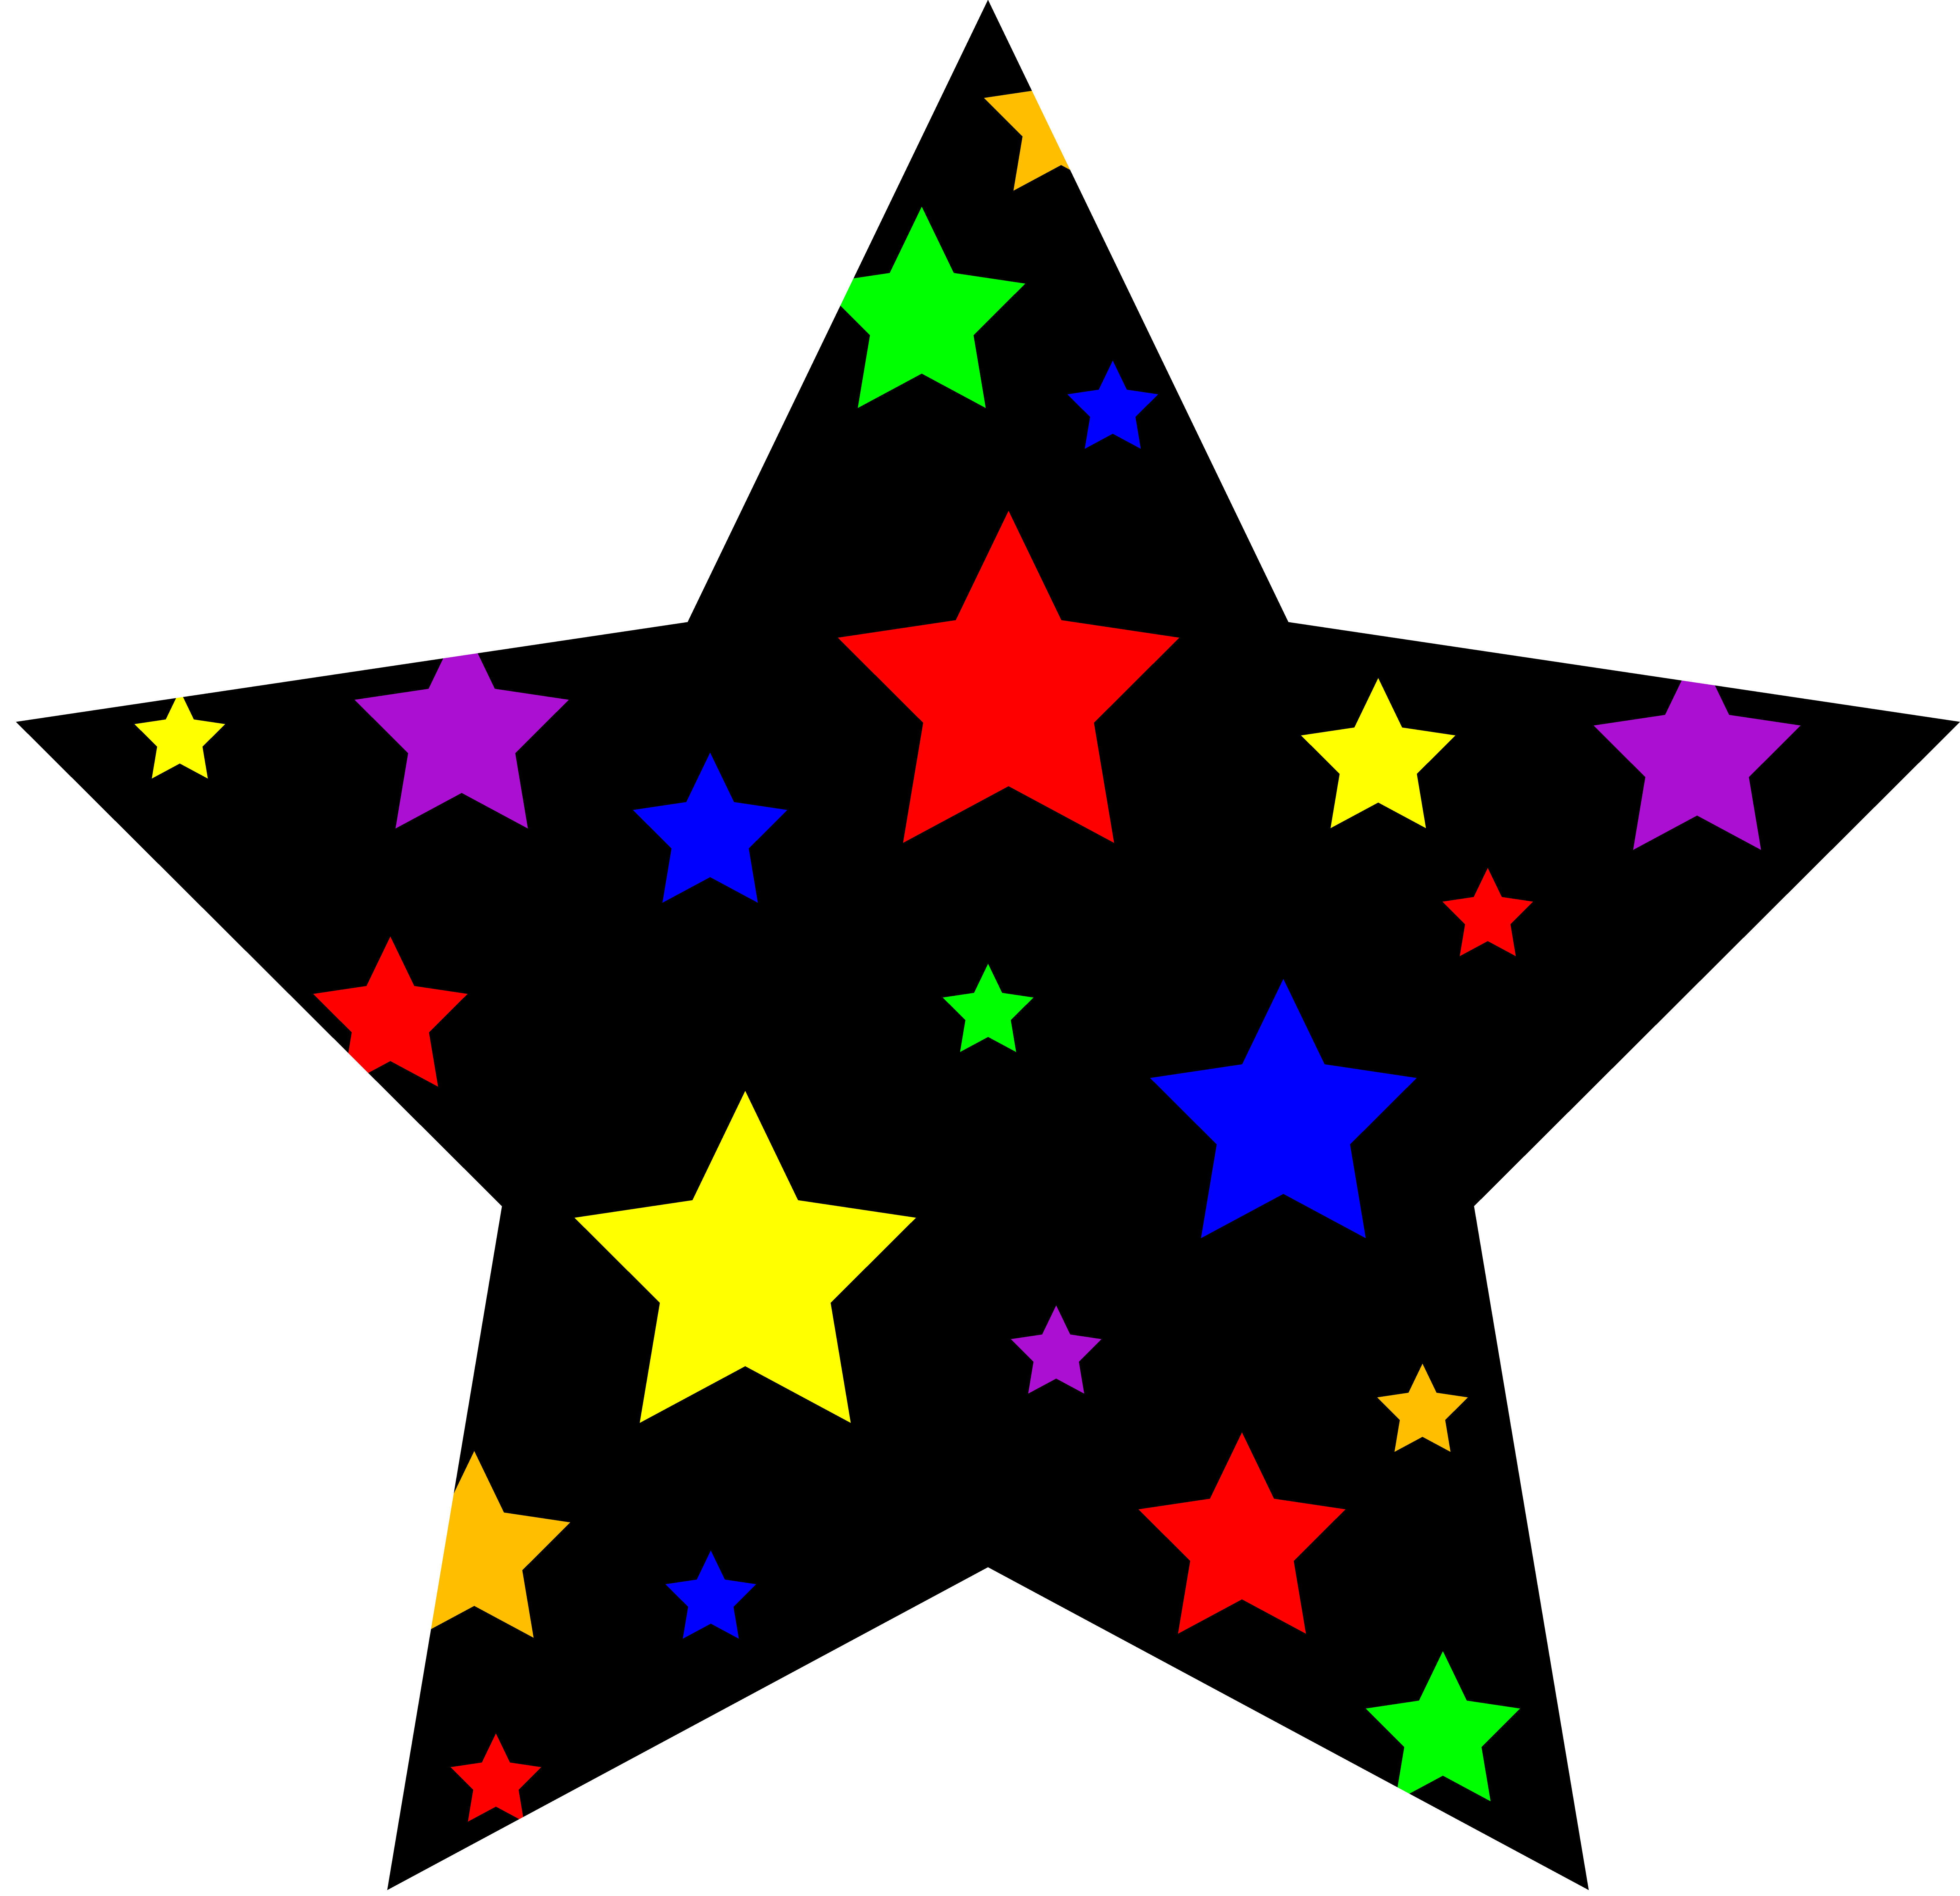 Stars clipart #2, Download drawings